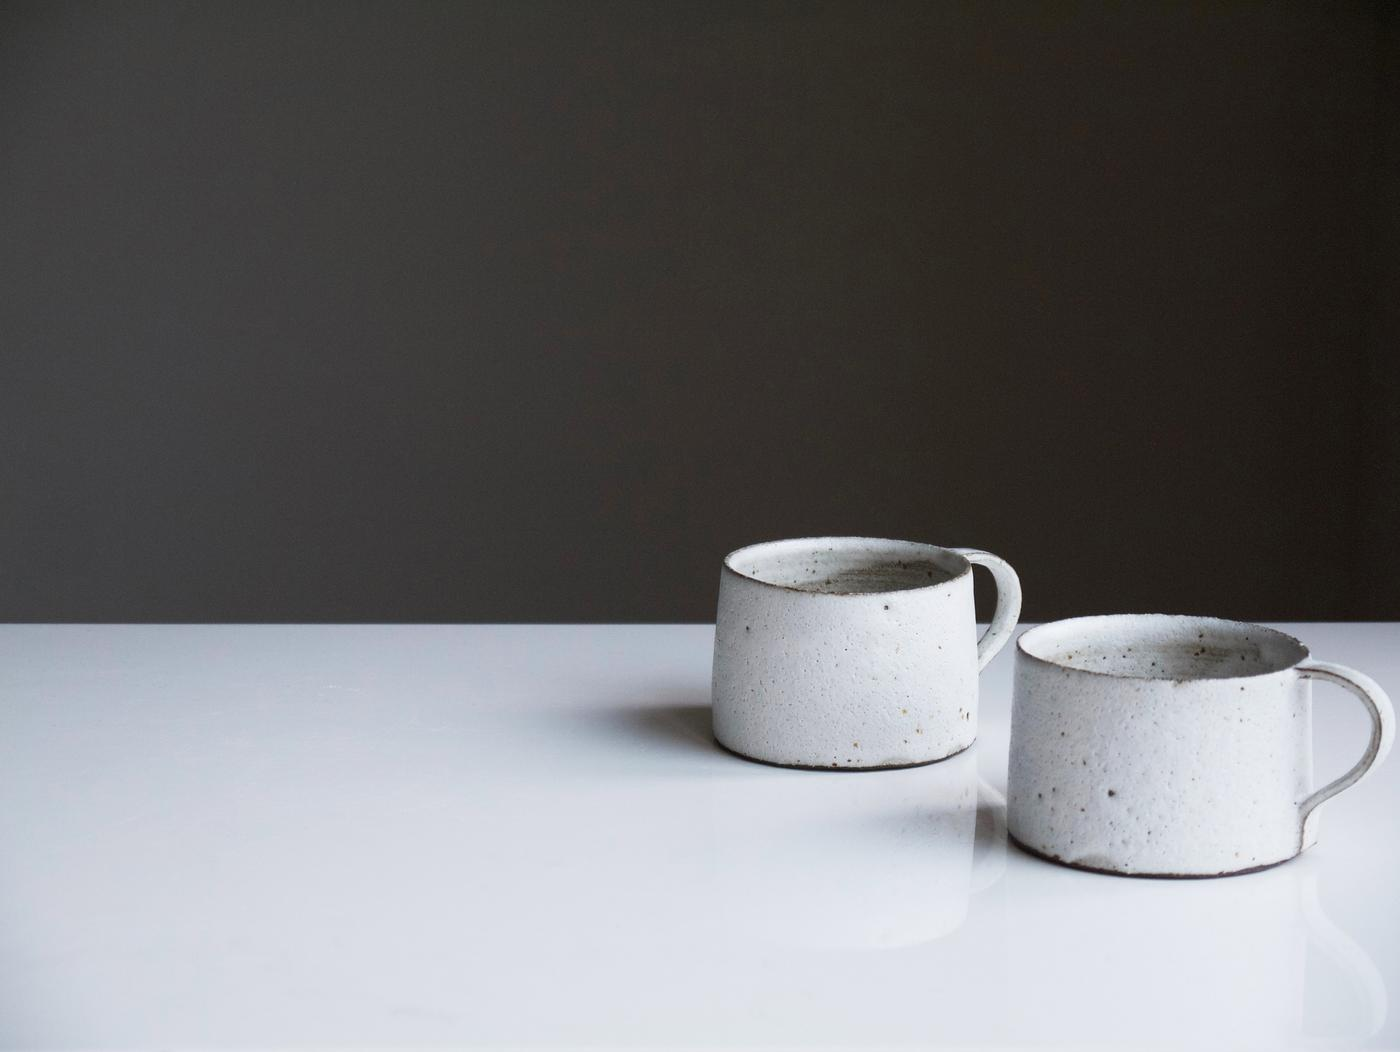 two mugs sitting on a counter surface